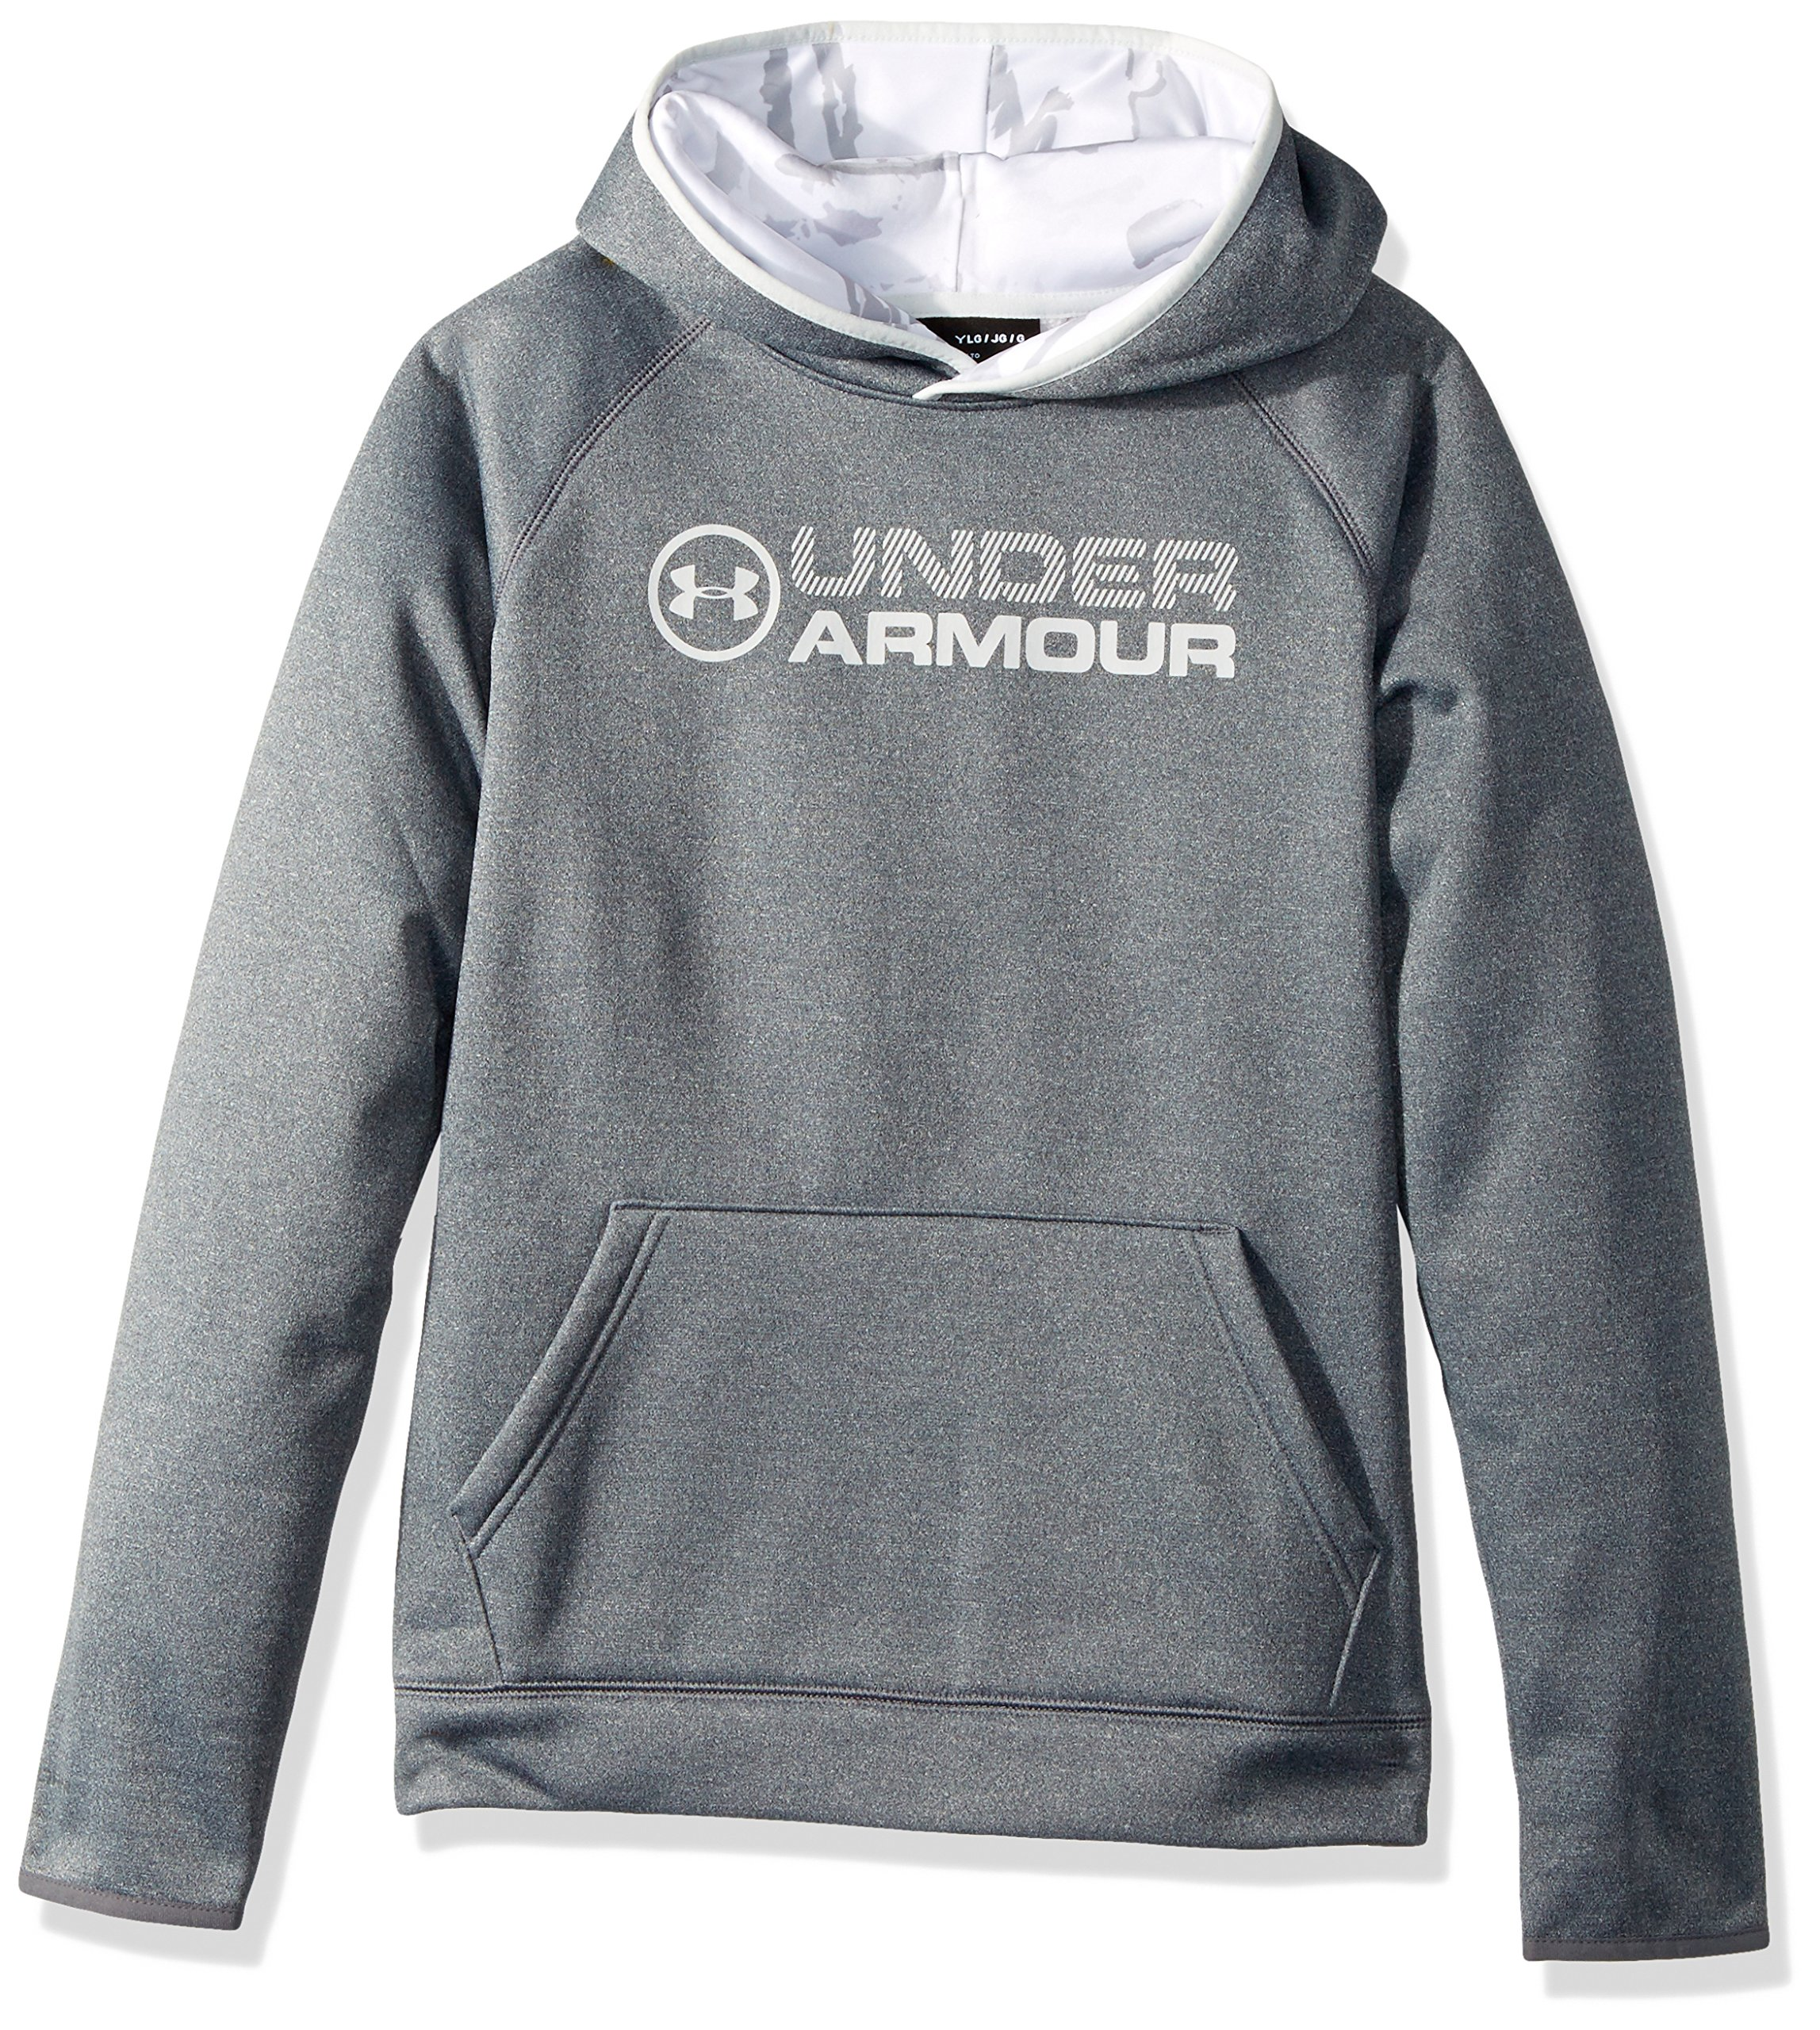 Under Armour Boys' Armour Fleece Stacked Hoodie, Carbon Heather (090)/Elemental, Youth Small by Under Armour